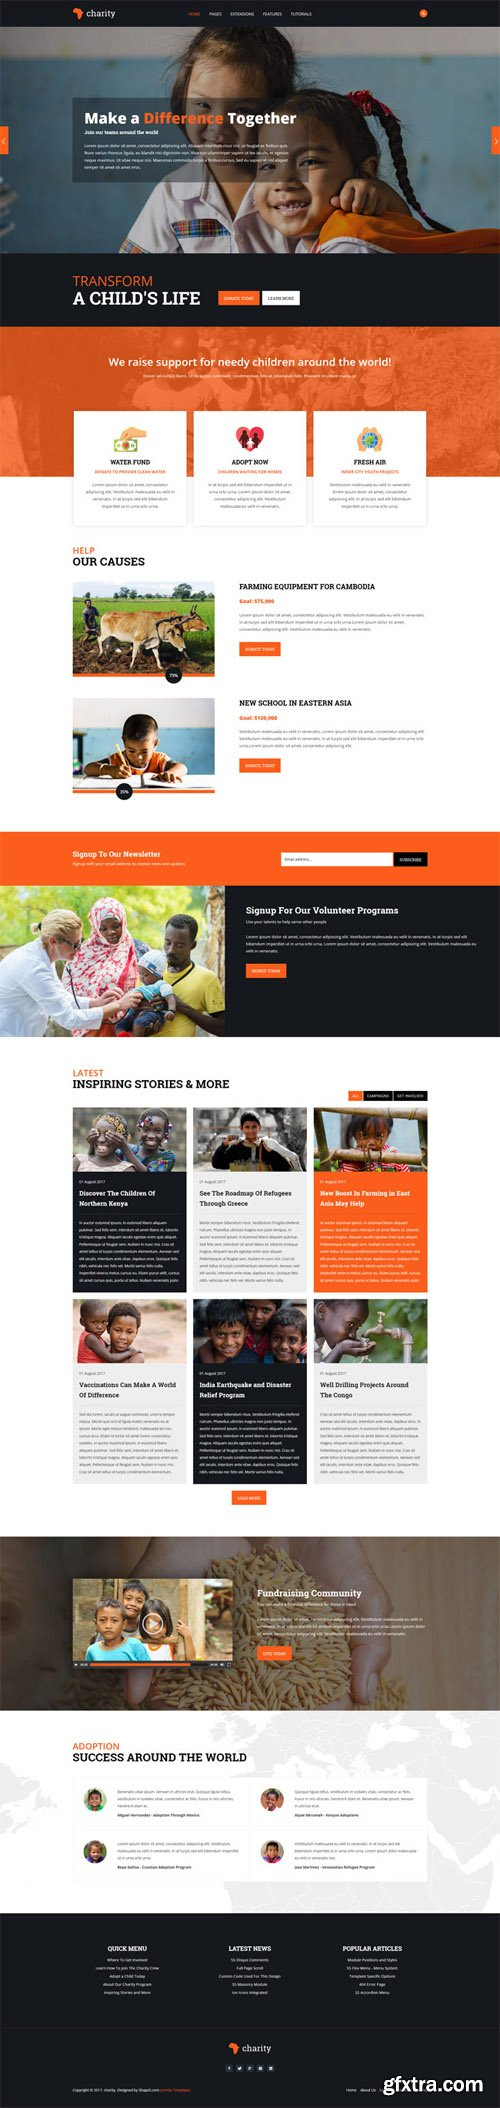 Shape5 - Charity v1.0.2 - Joomla Template